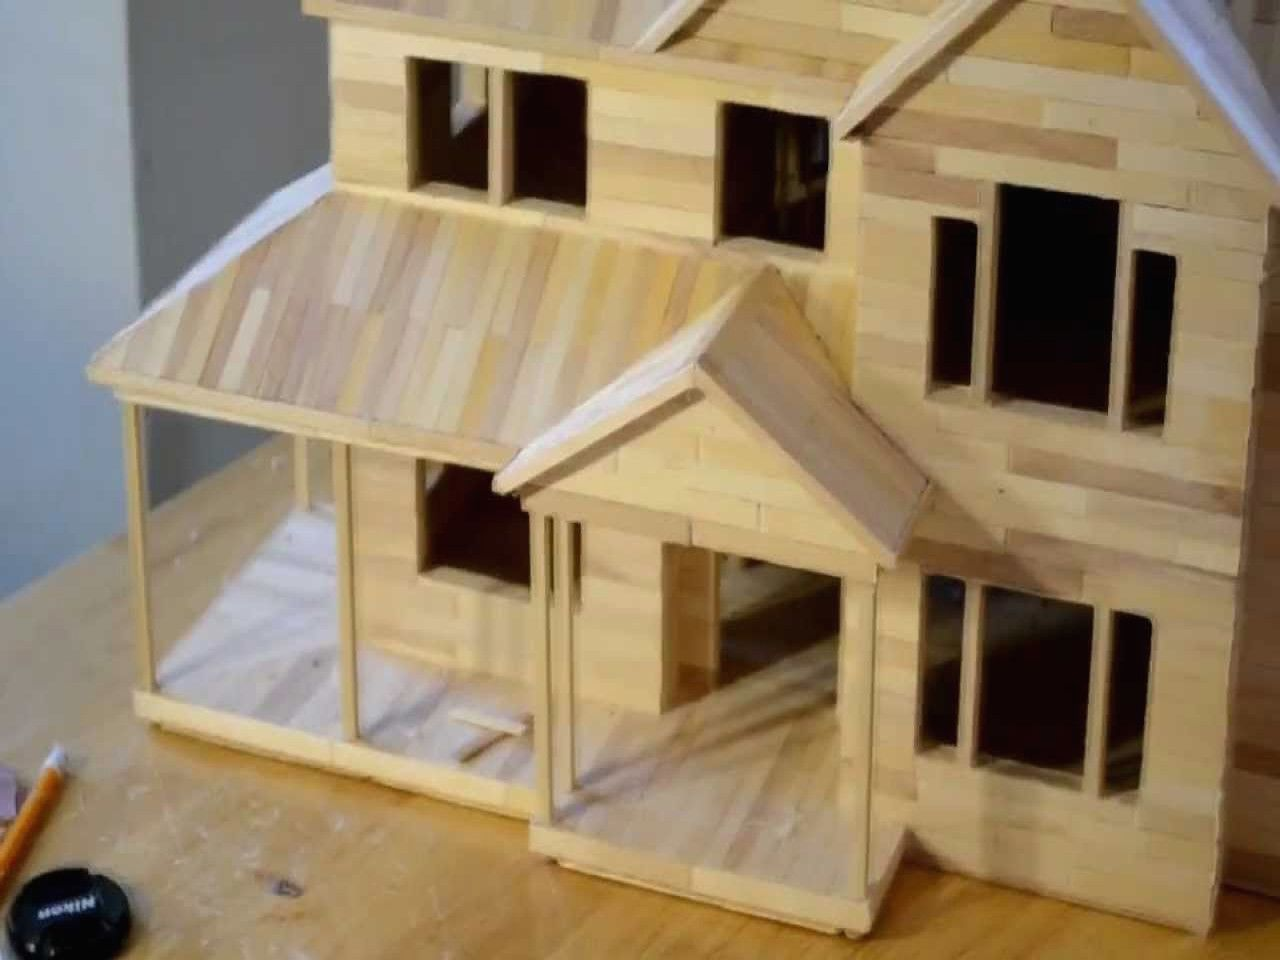 Popsicle Stick House Plans Free Awesome Popsicle Stick House Floor Plans Popsicle Stick Houses Popsicle House Unique House Plans